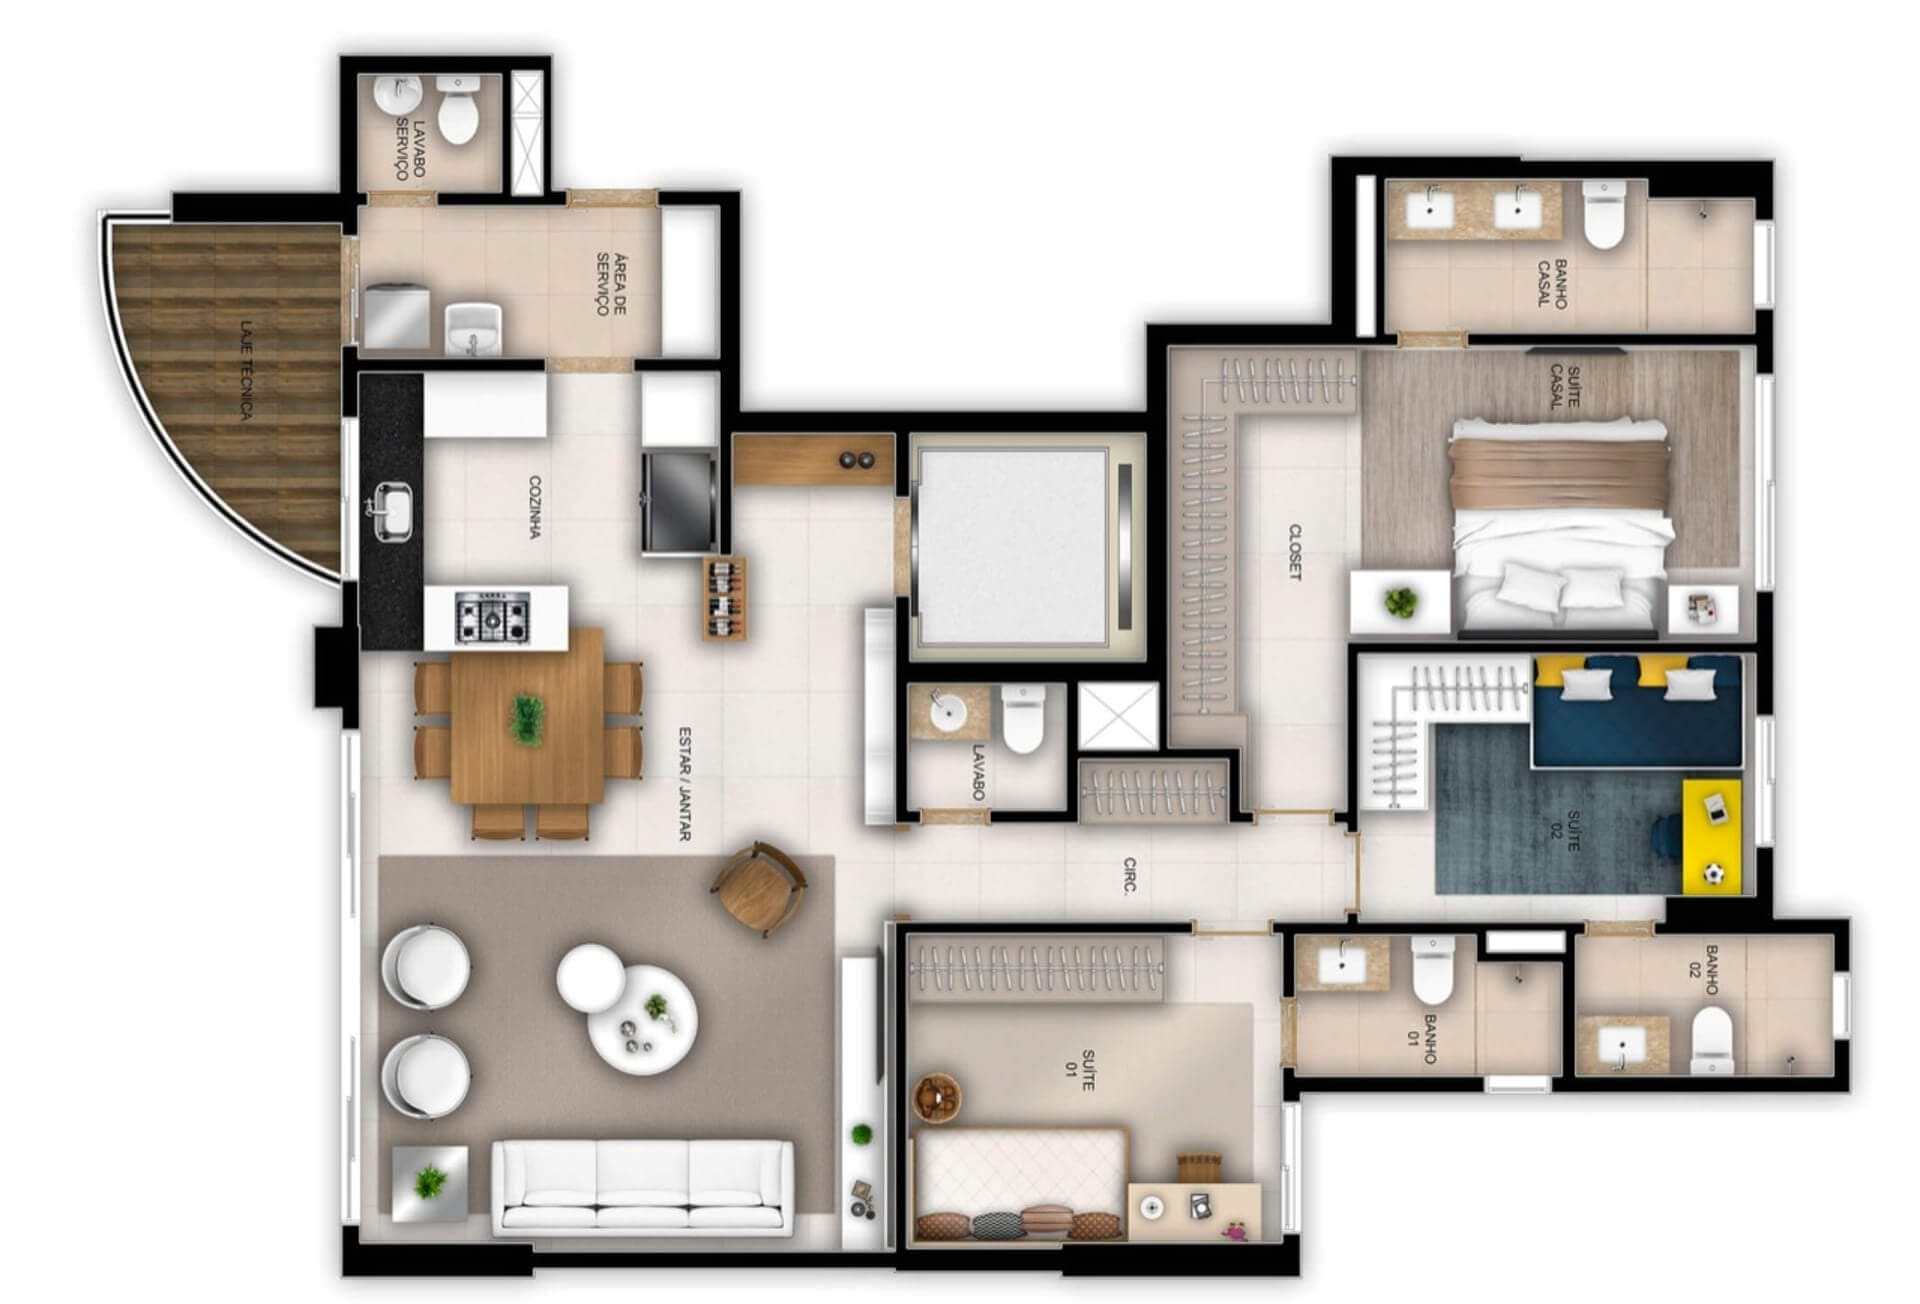 Planta do Fluence Marista. floorplan